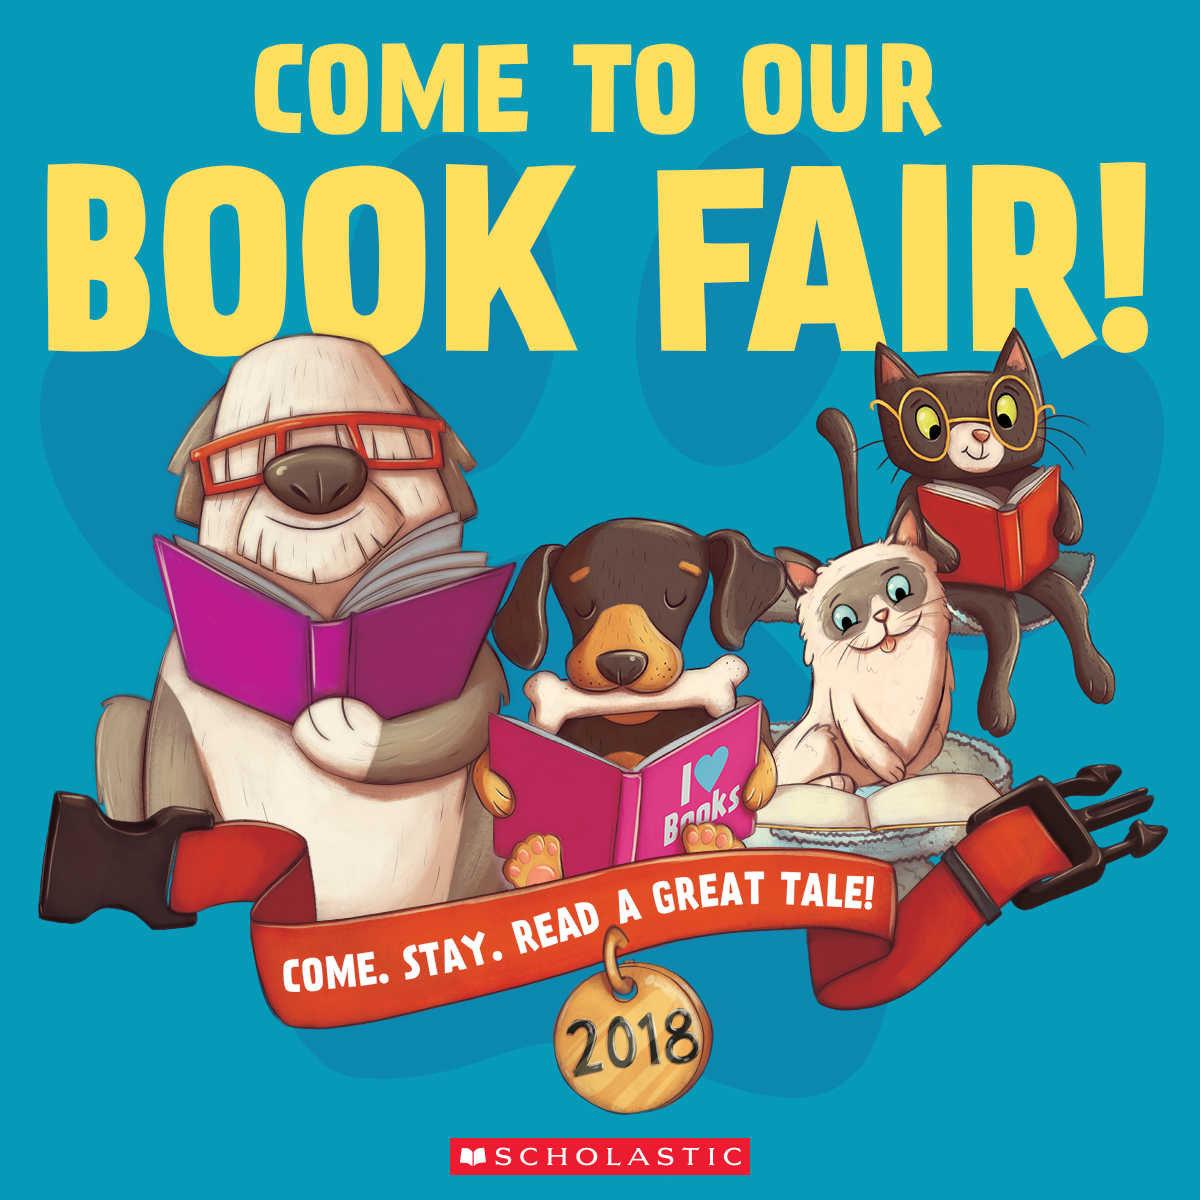 Click on the picture to shop the book fair online!